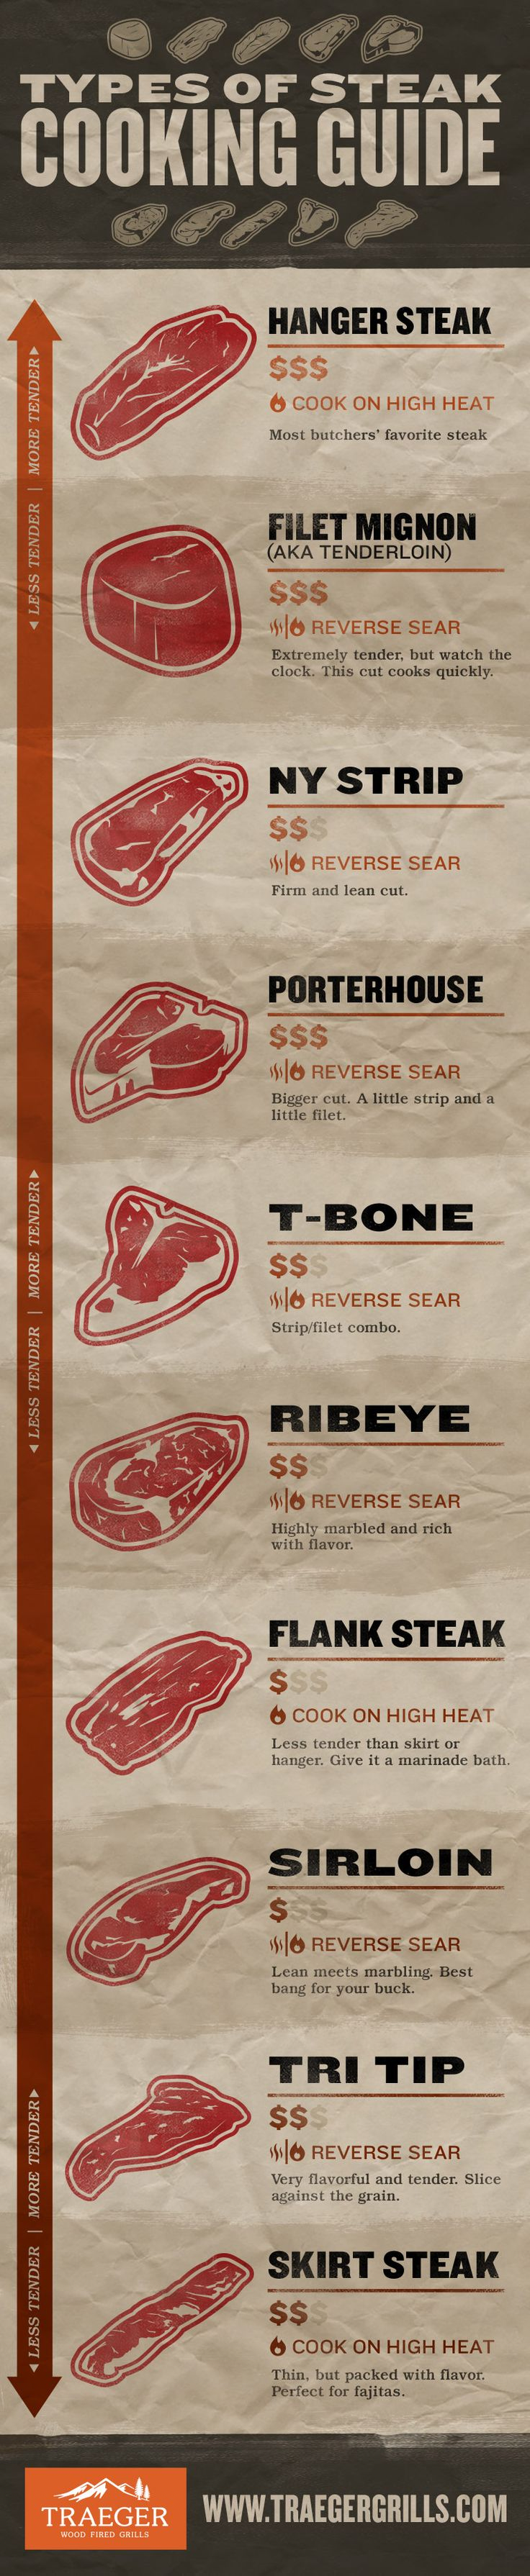 Types of Steak - Steak Cut Infographic How to Cook Steak